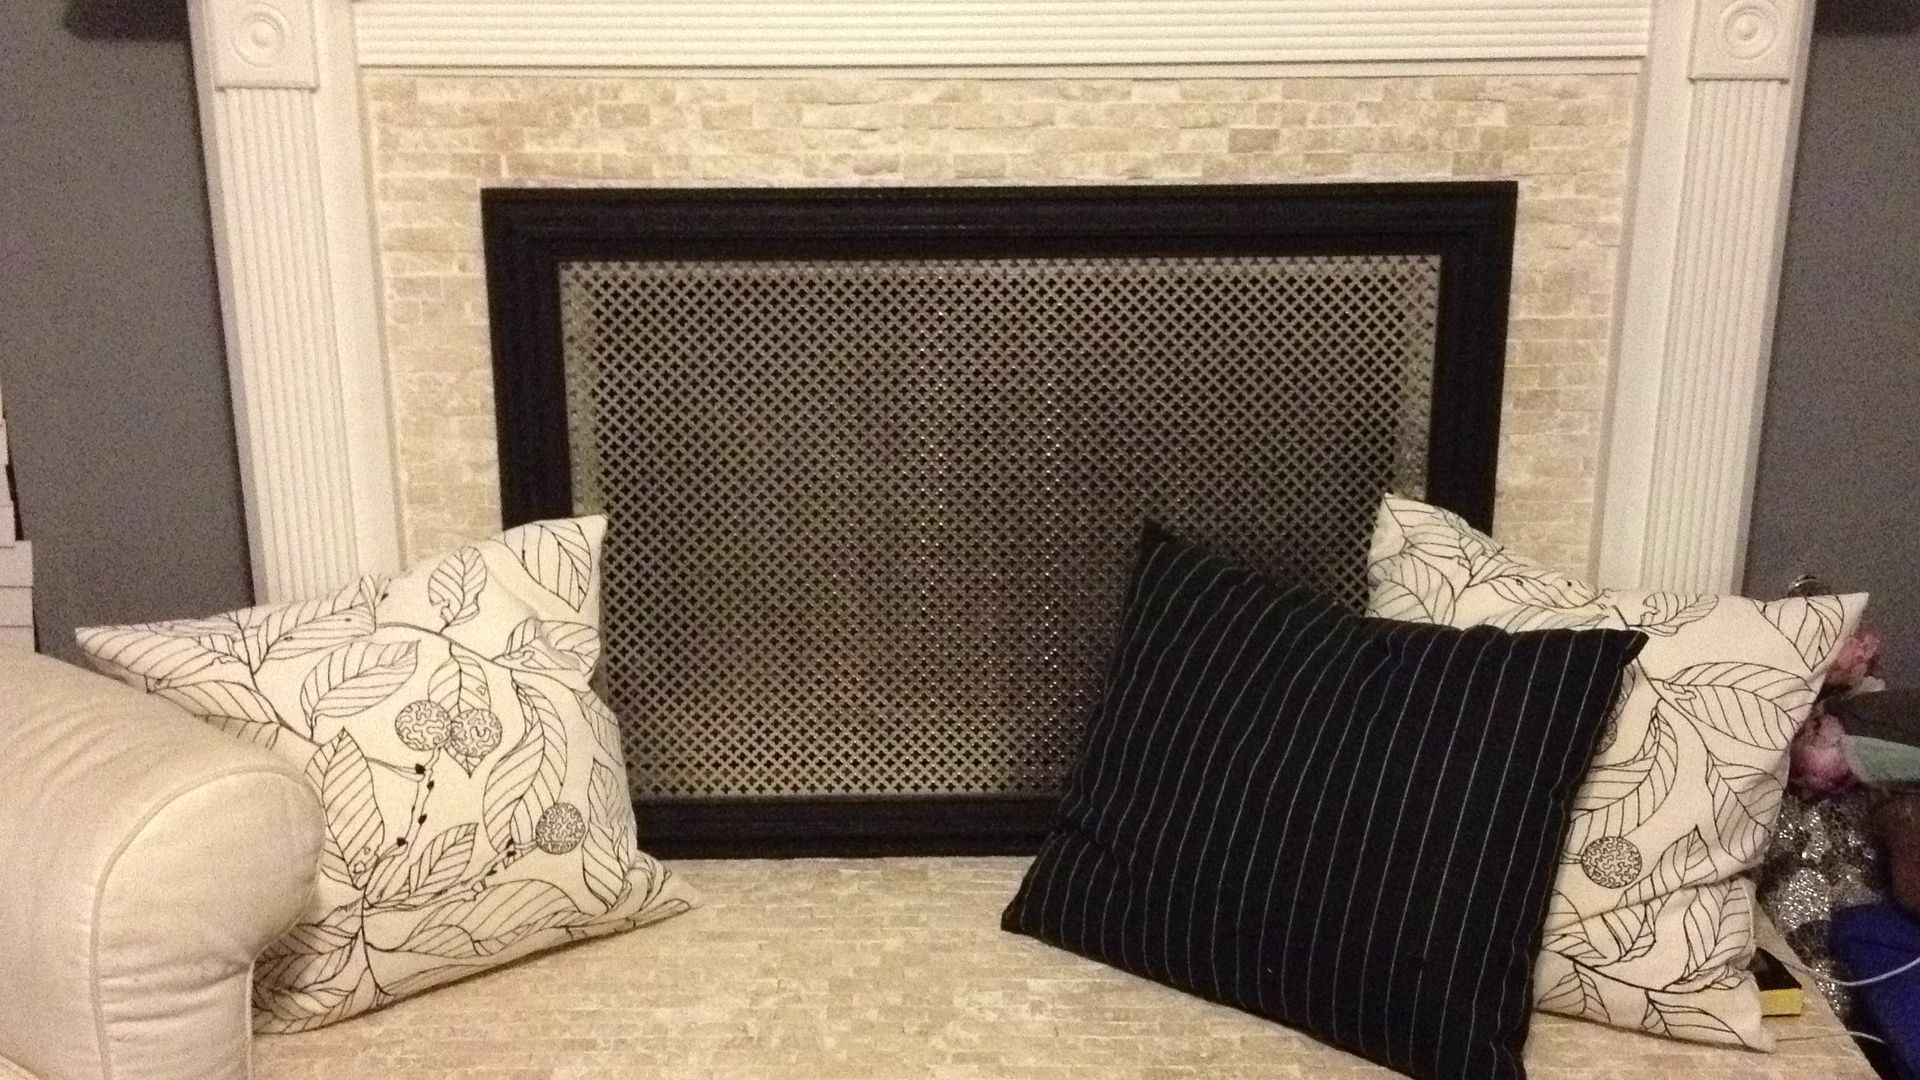 DIY decorative fireplace screen - drop a perforated aluminum sheet (I got mine from Home Depot) into a picture frame.  Hot glue where the metal meets the wood on the back and viol?!  Or how about smaller ones with hinges so you can move it about better.